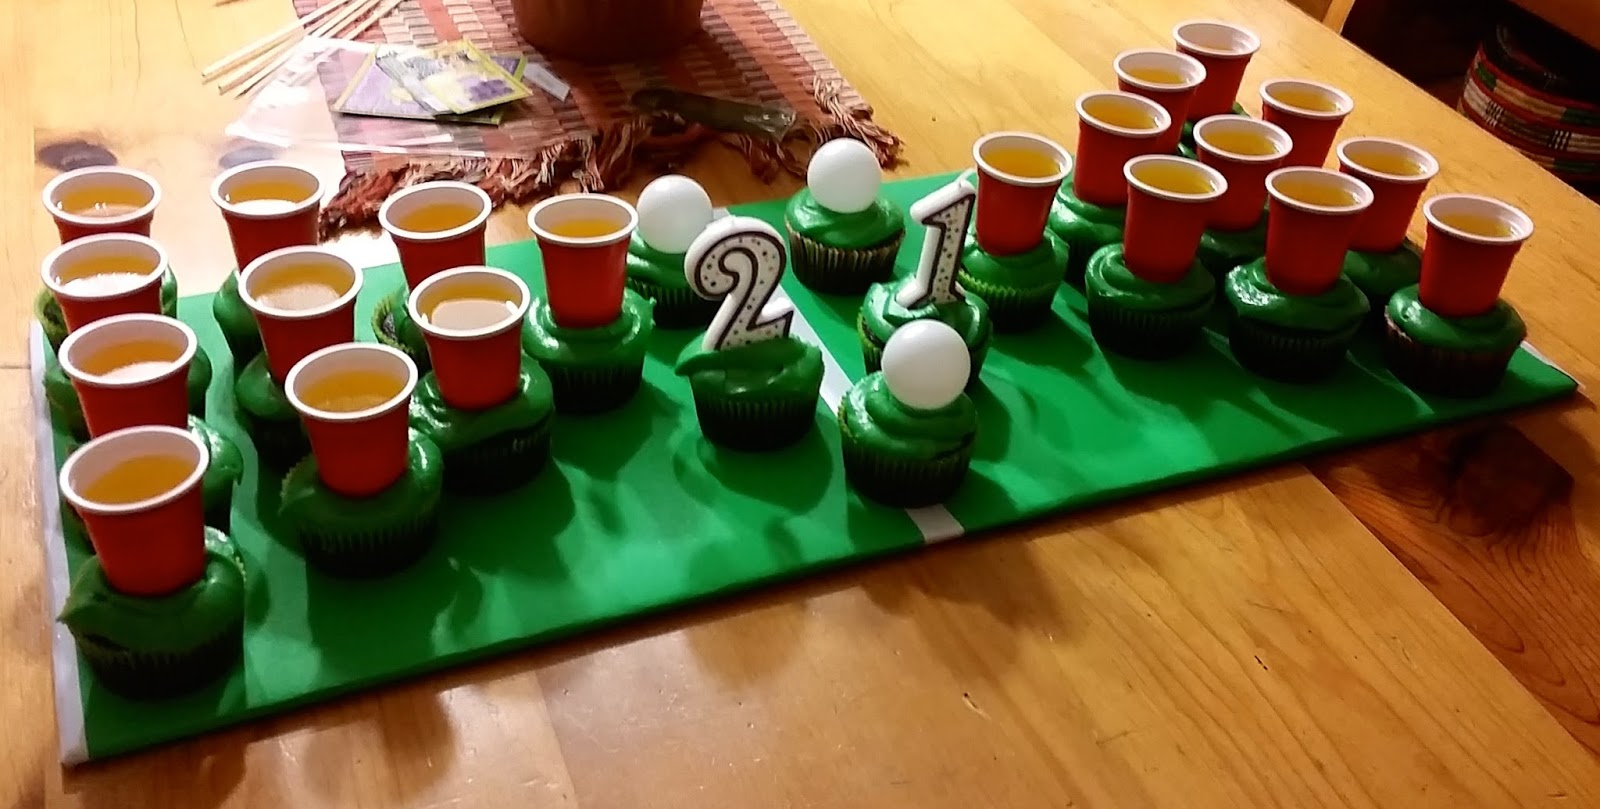 Confessions Of A Pinterest Addict Beer Pong Cupcakes